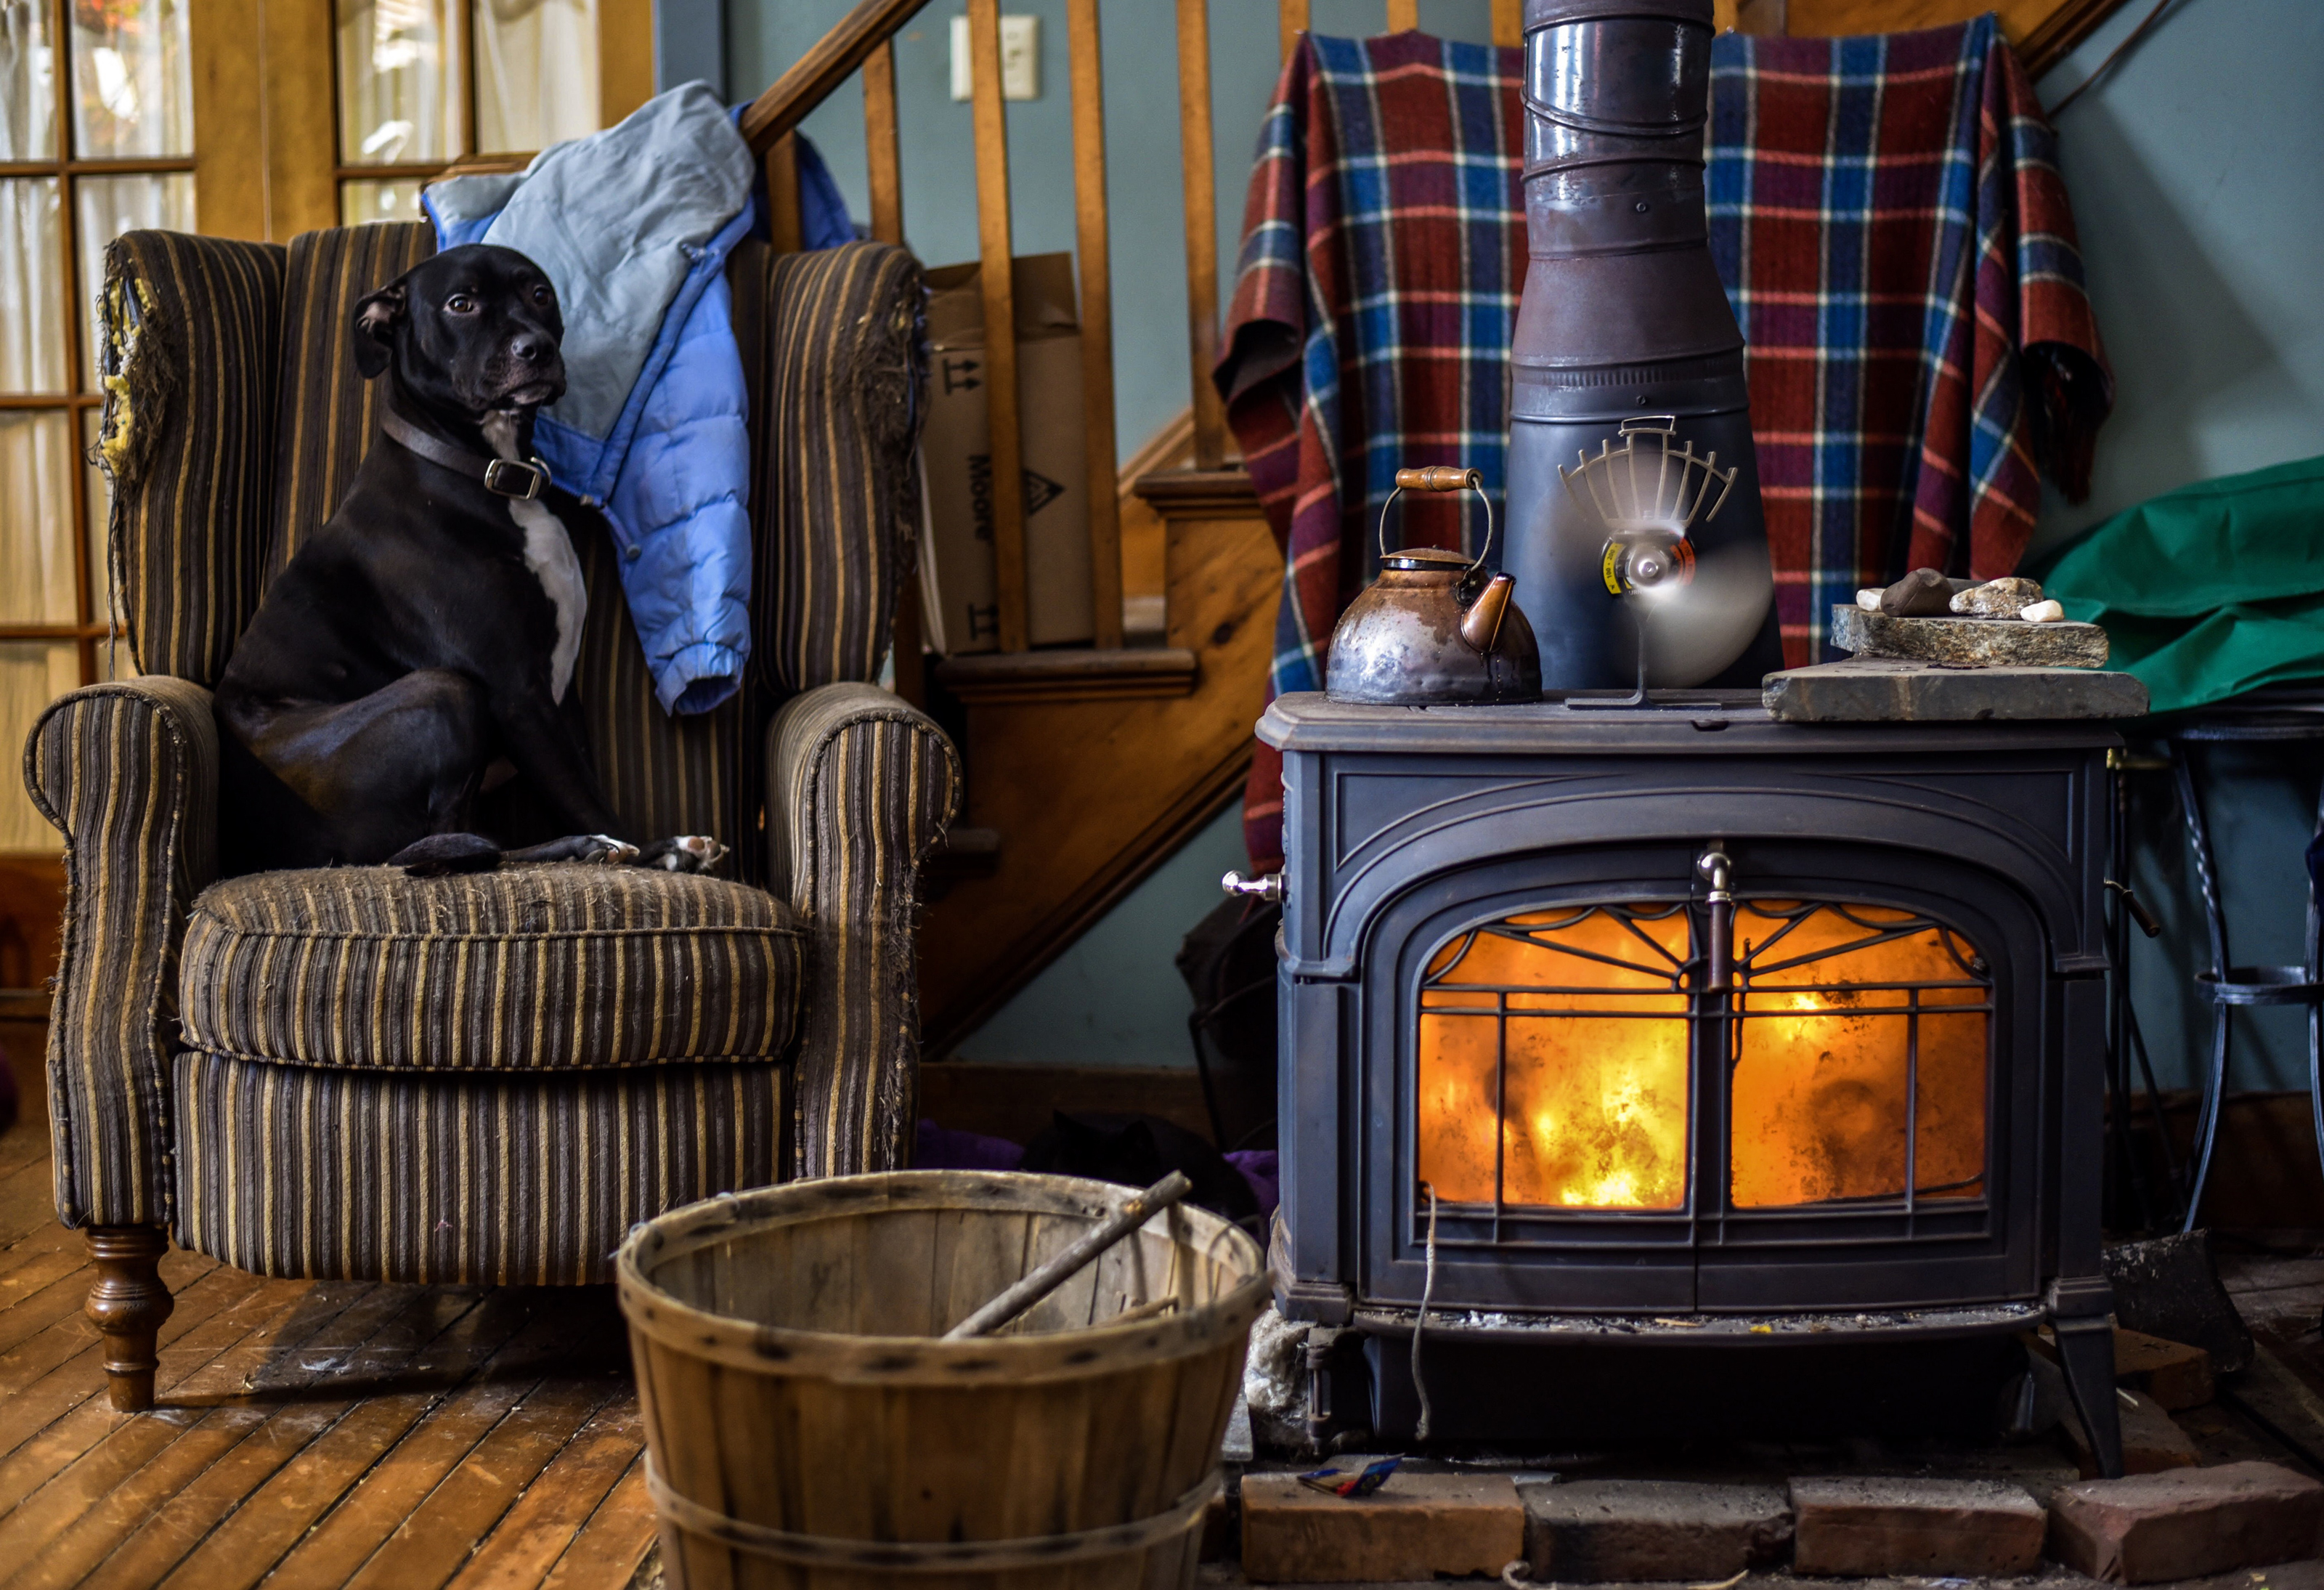 Dog sitting on chair in cabin location with wood stove